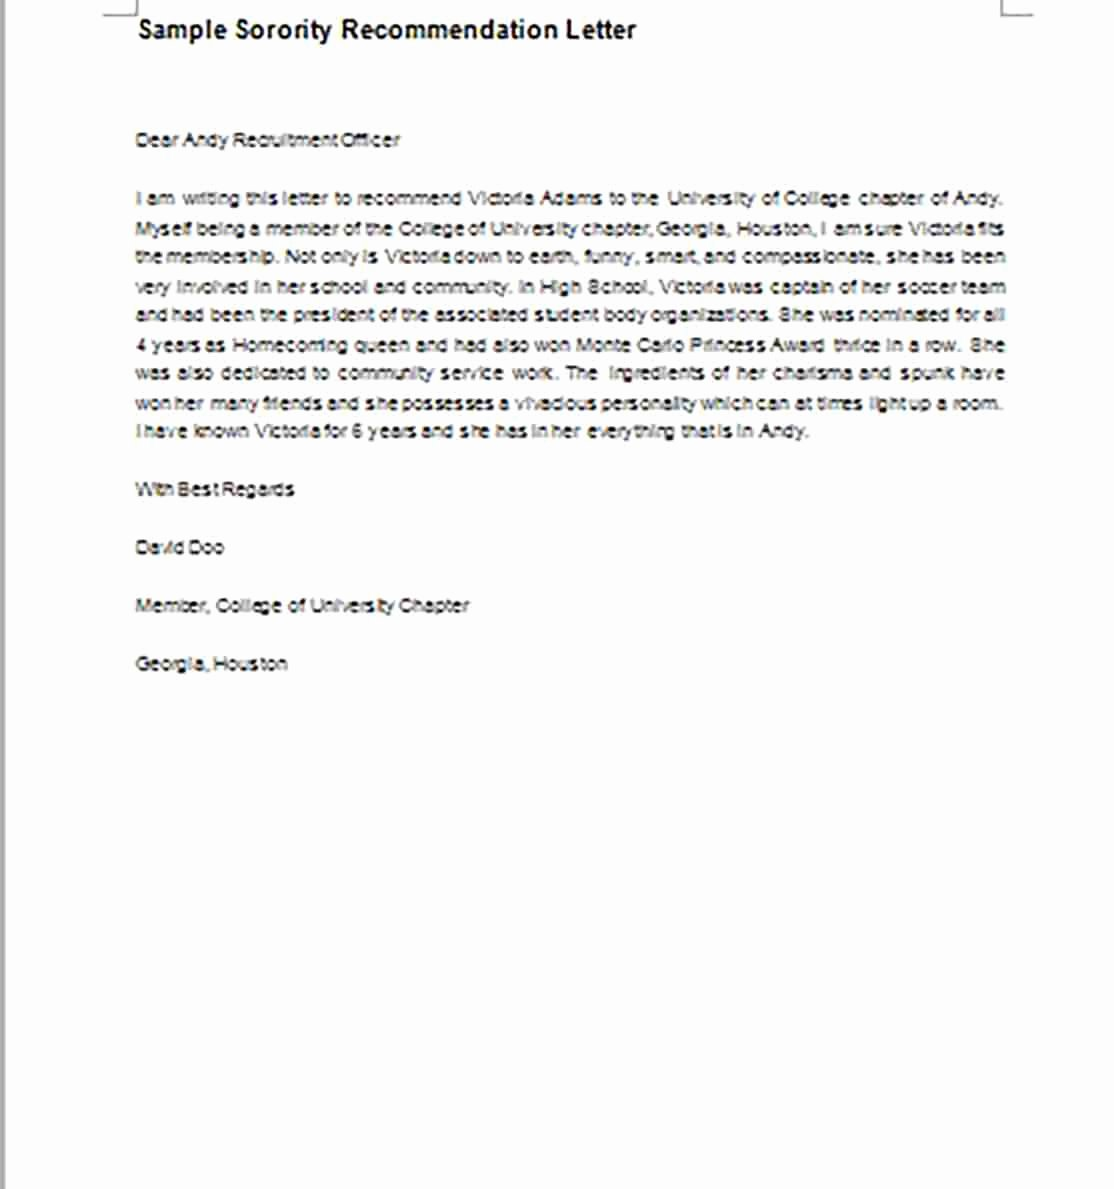 Sorority Recommendation Letter Template Lovely Re Mendation Letter Example and How to Make It Ting